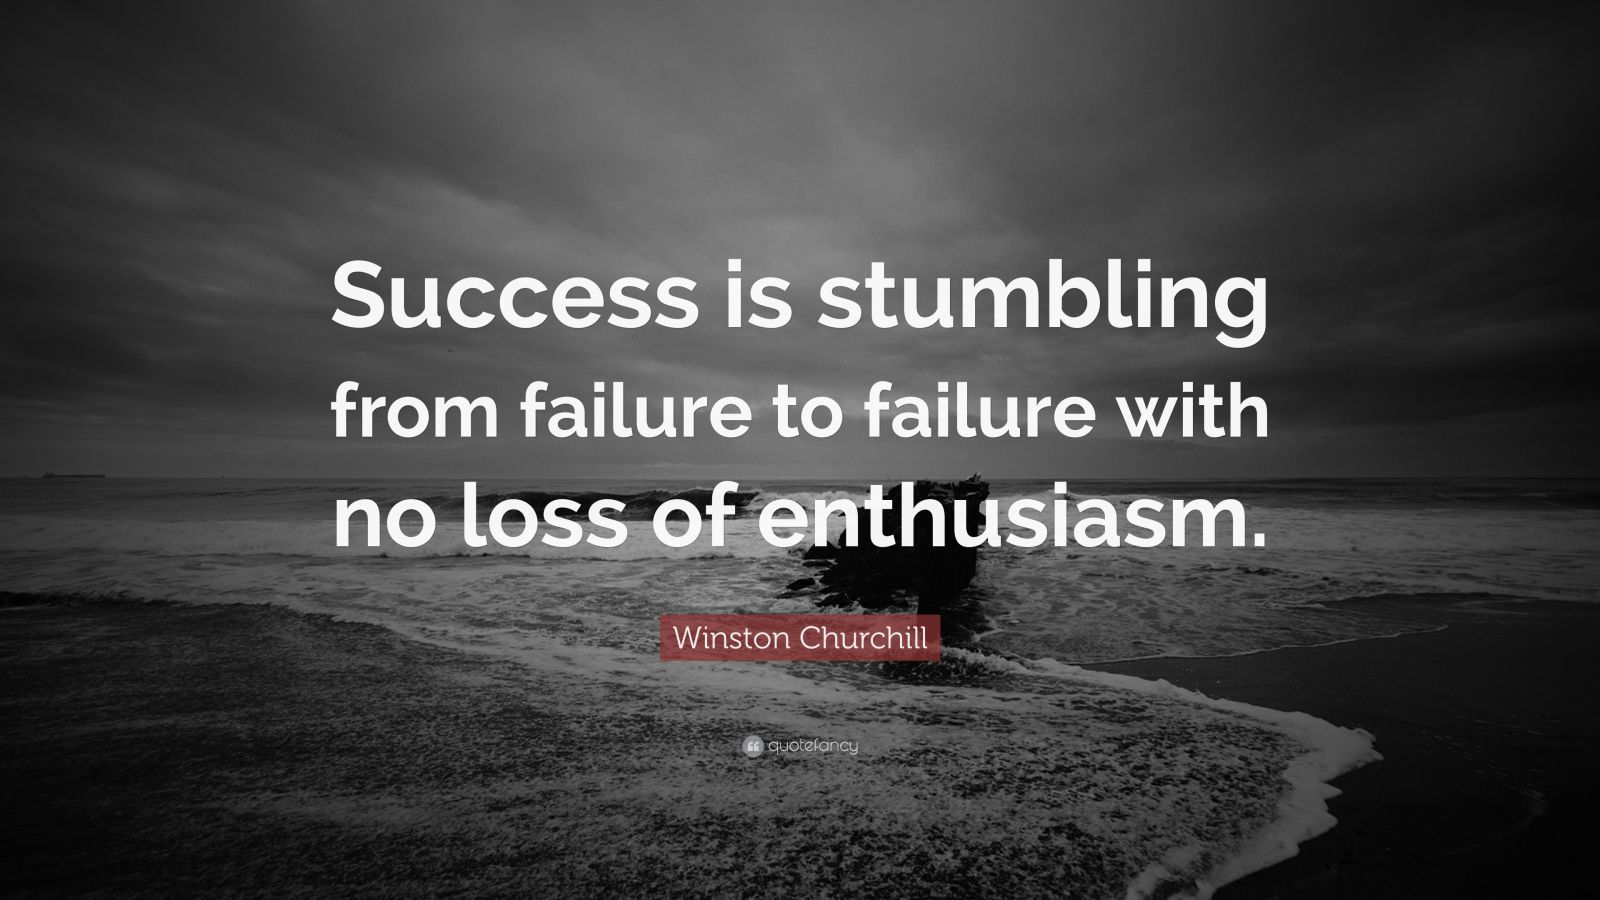 Success Quotes (100 wallpapers) - Quotefancy Quotes About Failure Image